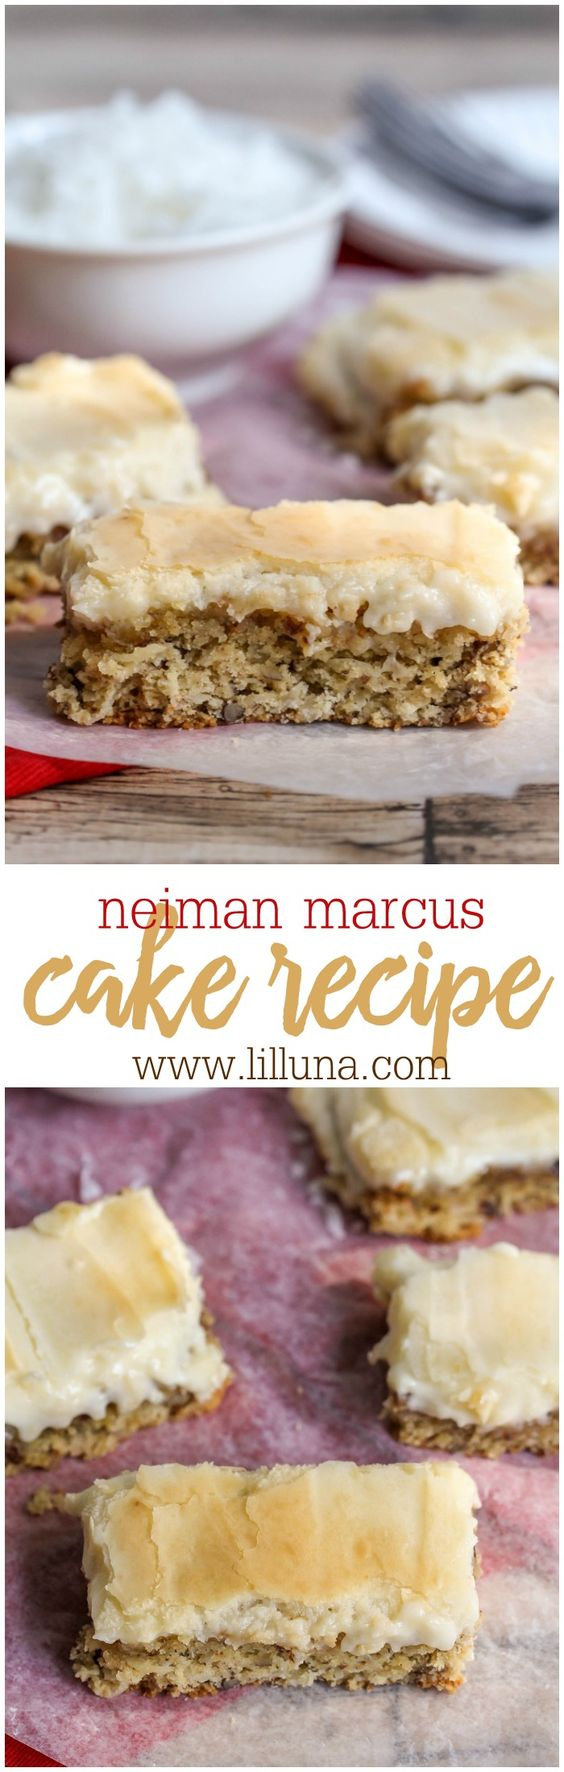 Neiman Marcus Cake - if you've ever had this before, you know how INCREDIBLE the pecan and coconut crust is, with a gooey cream cheese batter layer on top! AMAZING!!